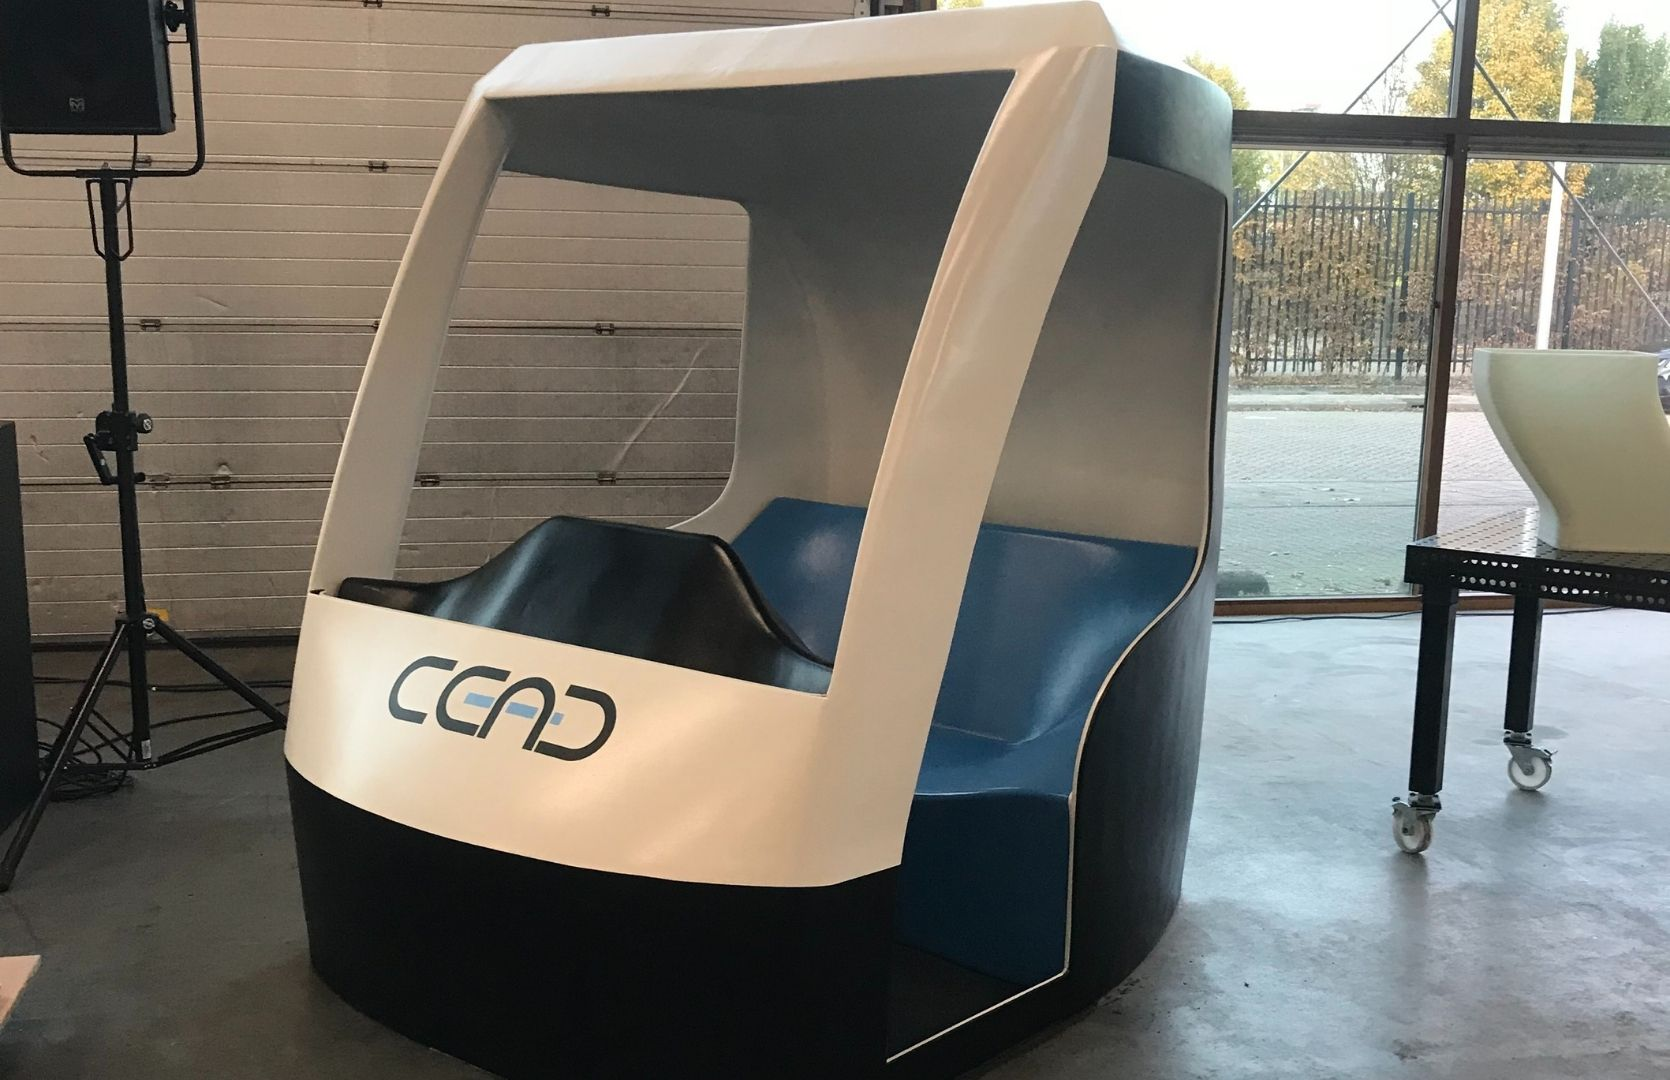 3D printed cabin with CEAD color and CEAD logo